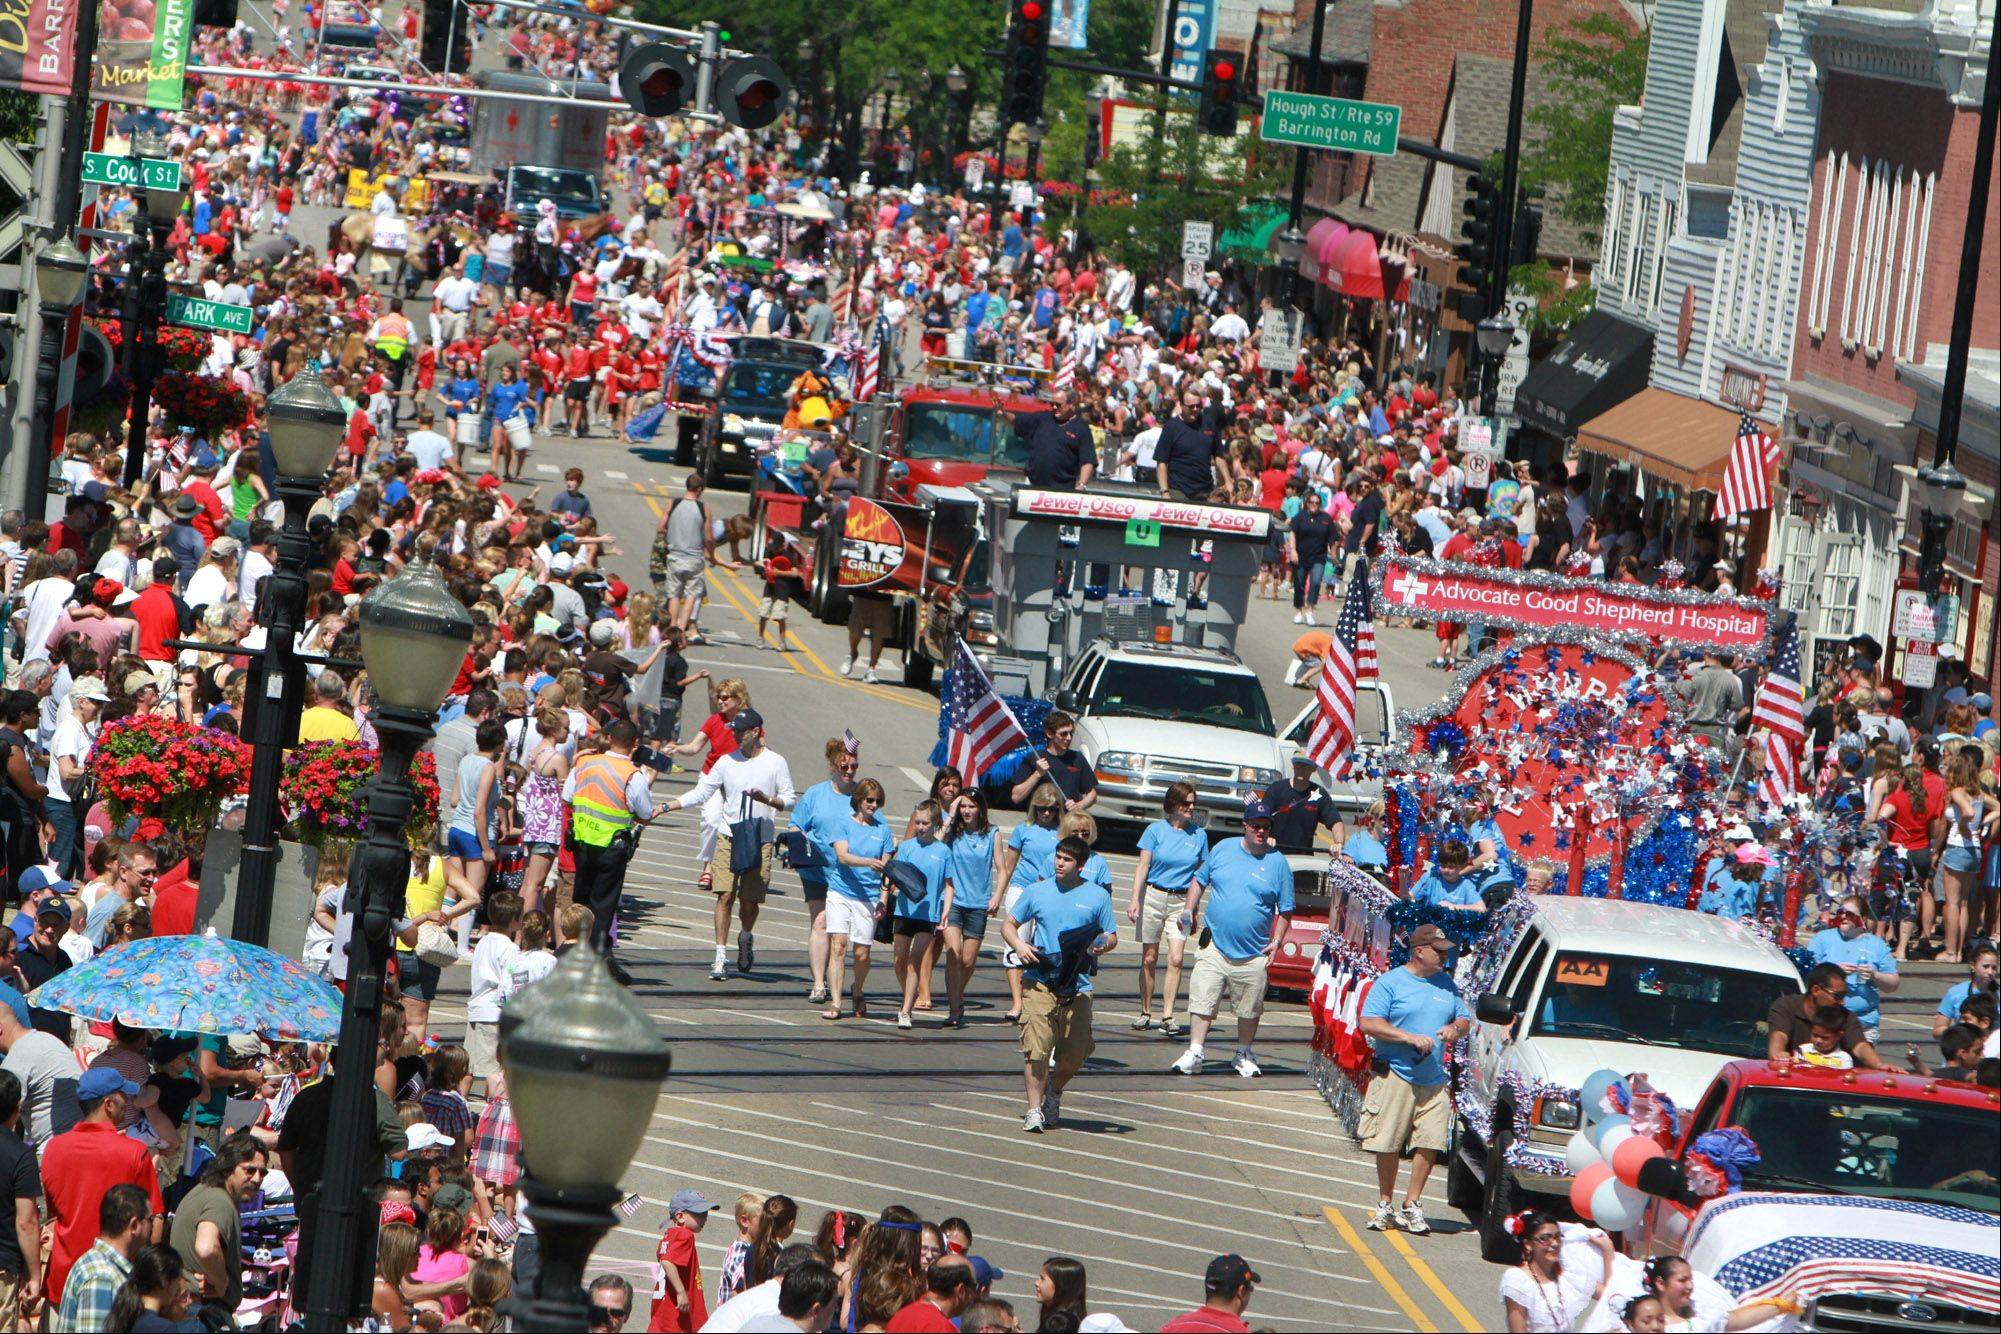 Thousands lined Main Street in Barrington for the Fourth of July parade Monday.